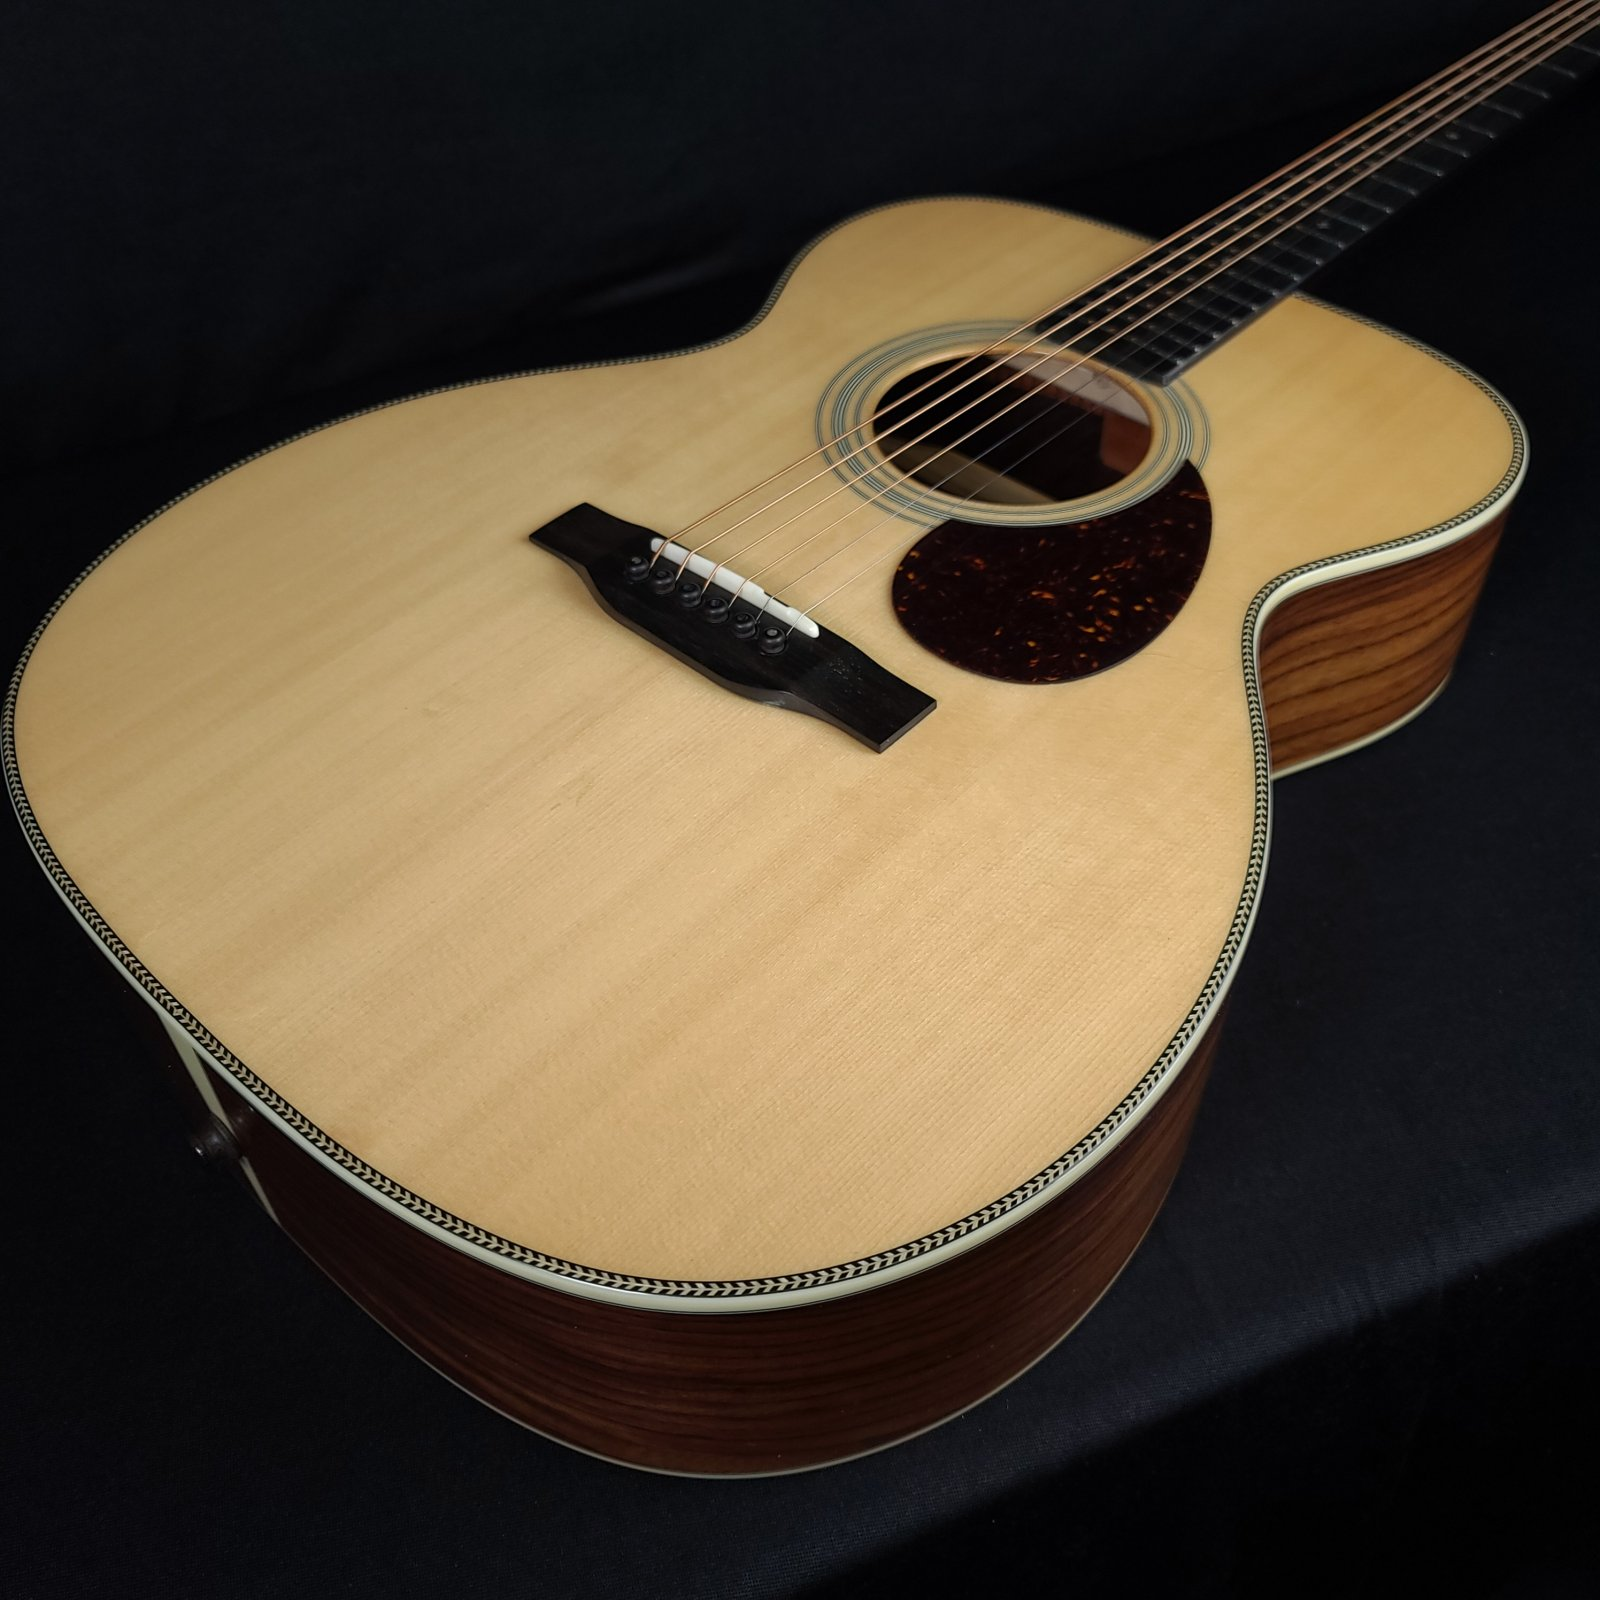 Eastman E8OM Orchestra Natural Acoustic Guitar With Case